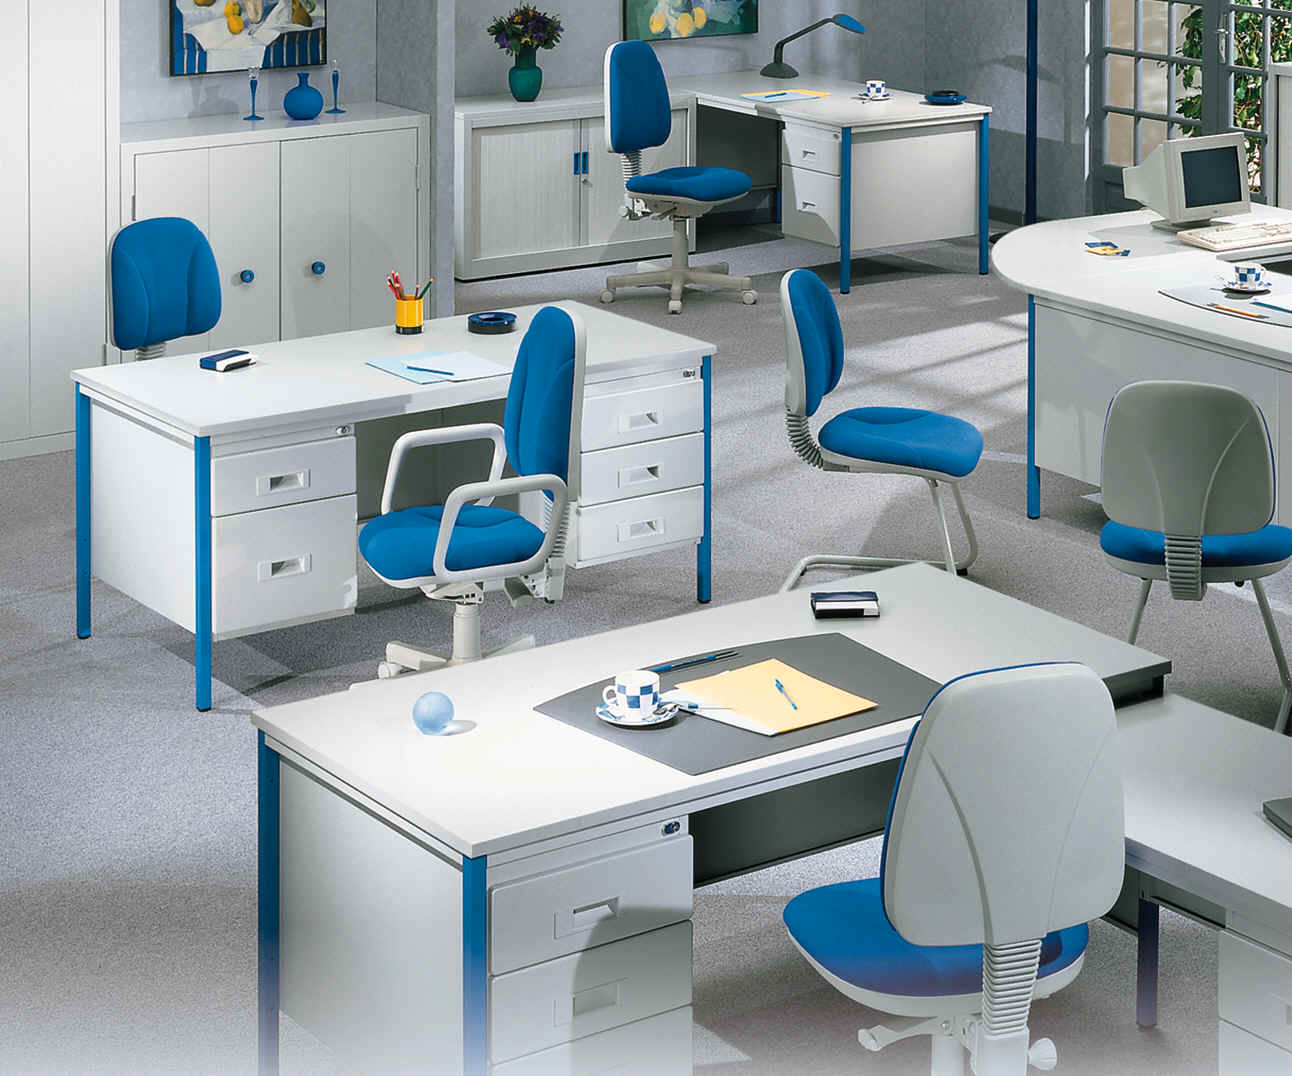 Outstanding Modern Office Furniture Design 1292 x 1076 · 128 kB · jpeg